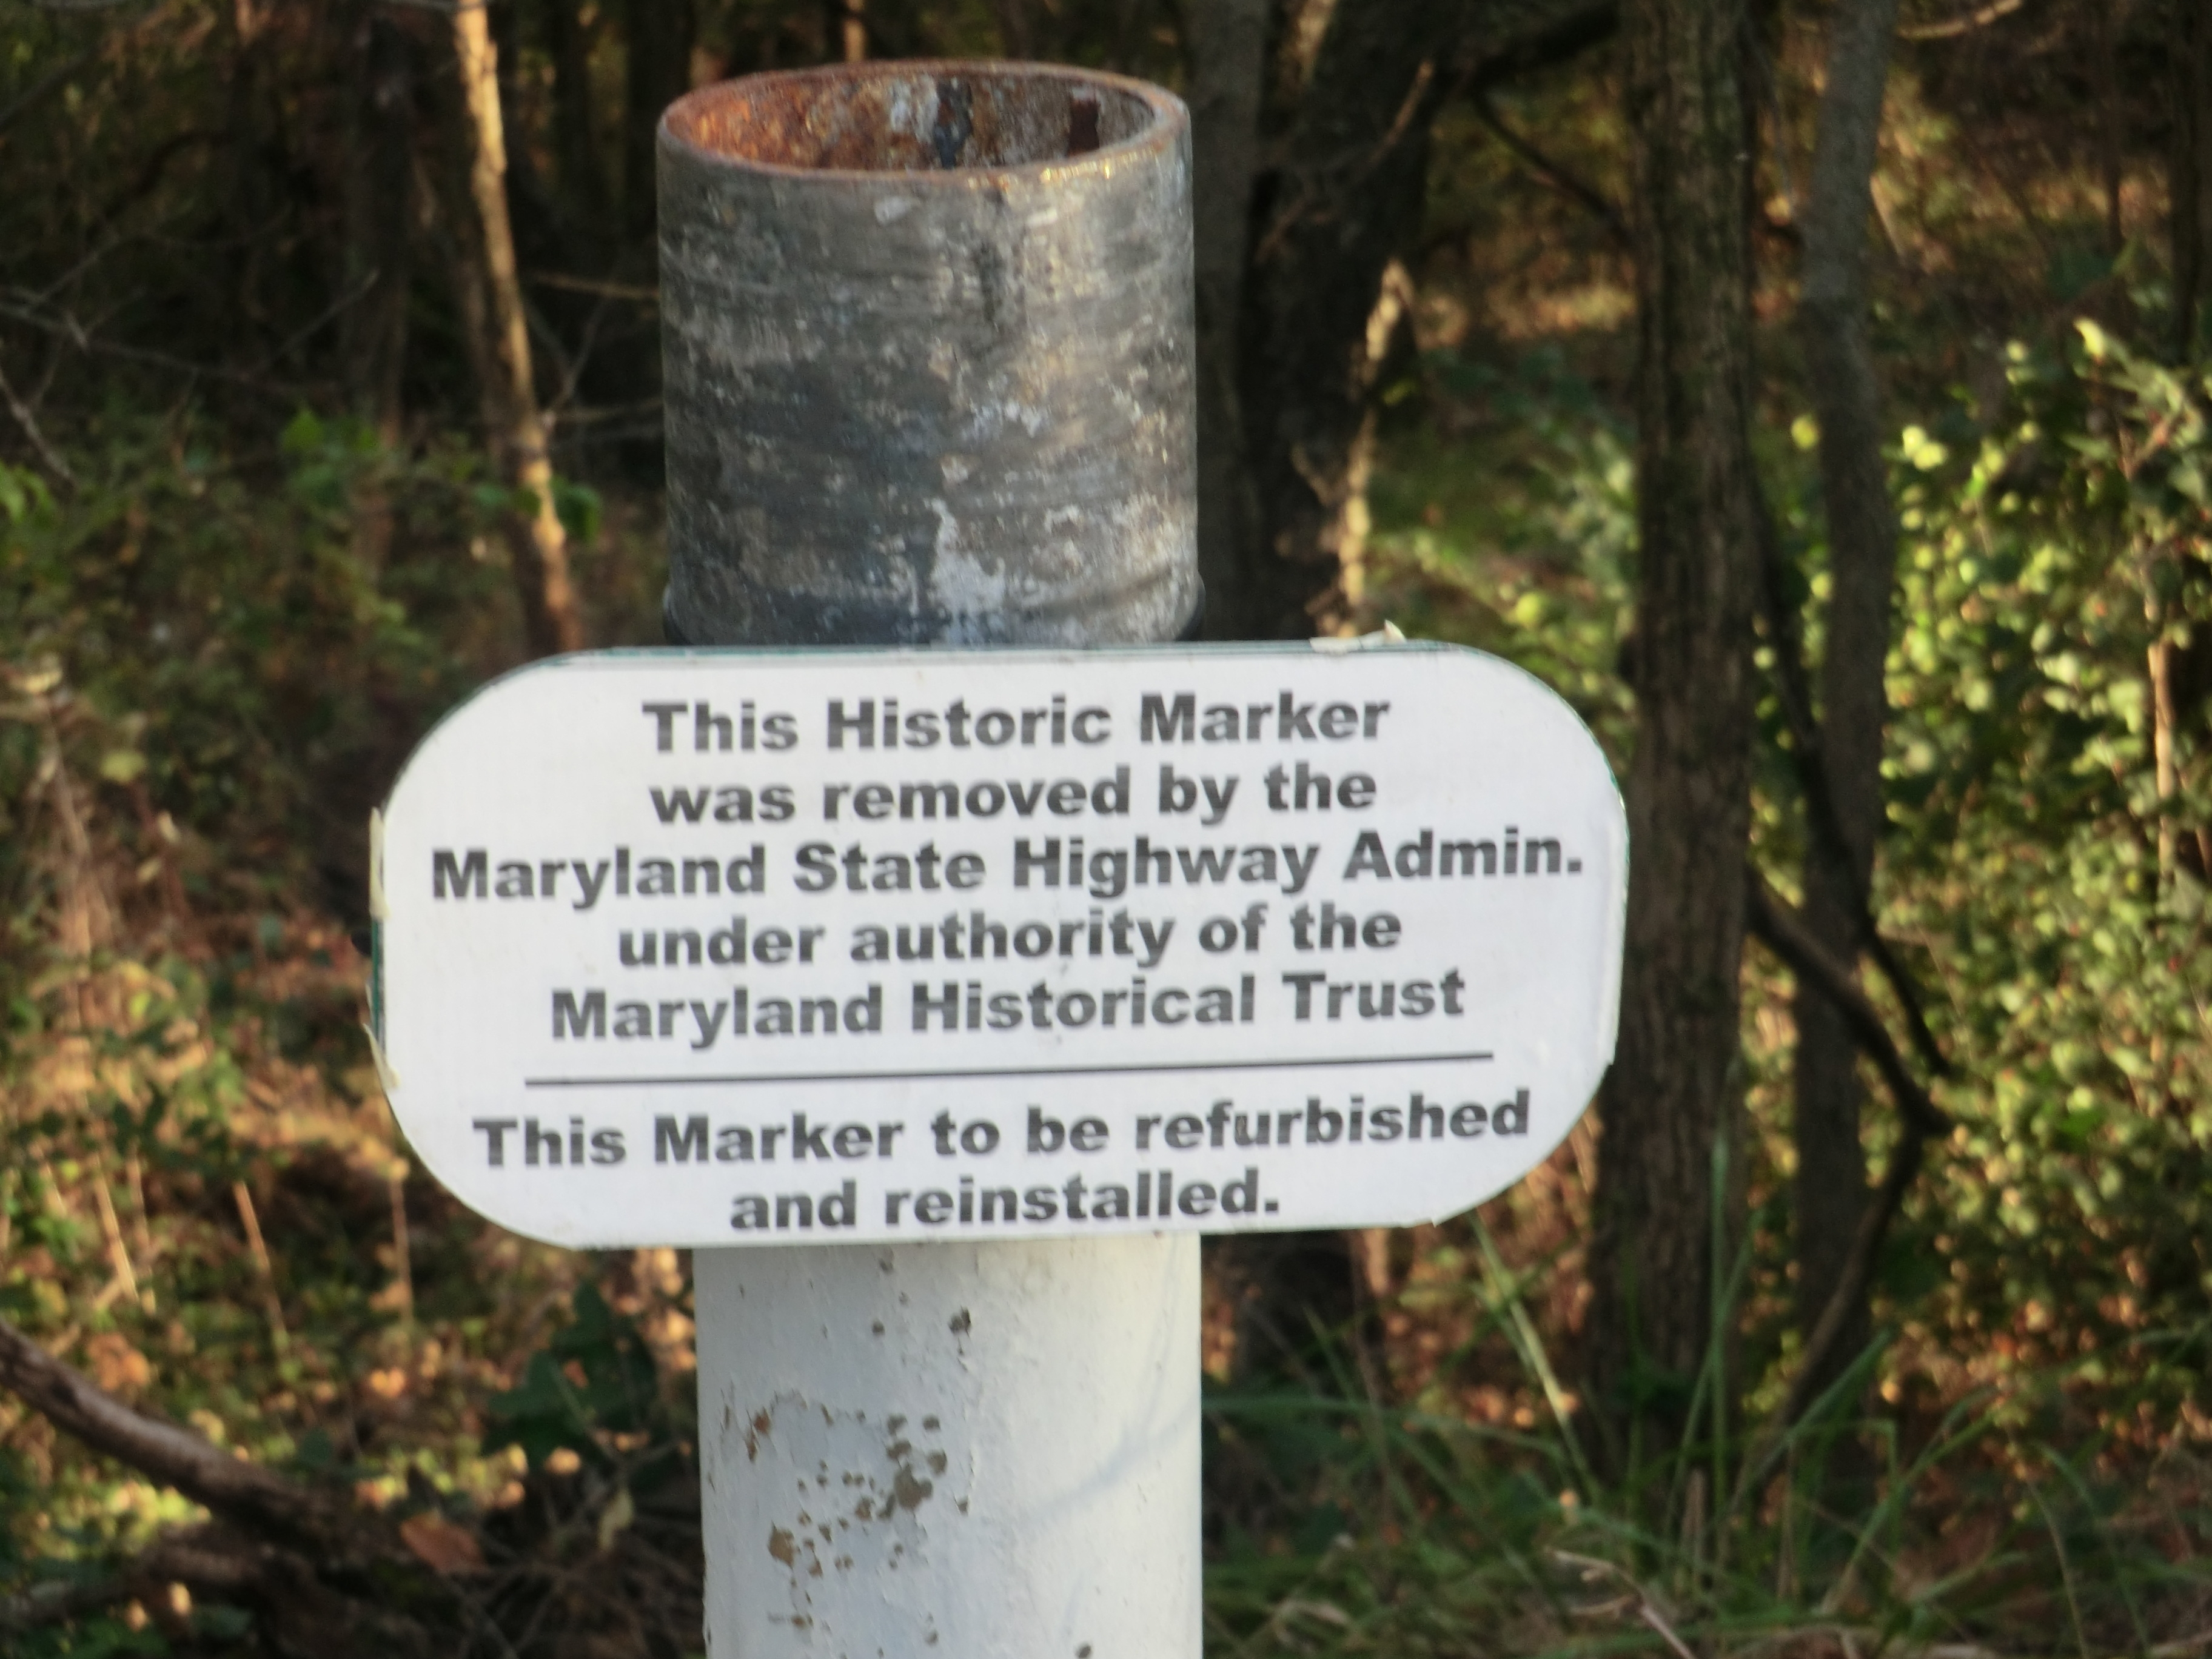 Marker was removed for maintenance